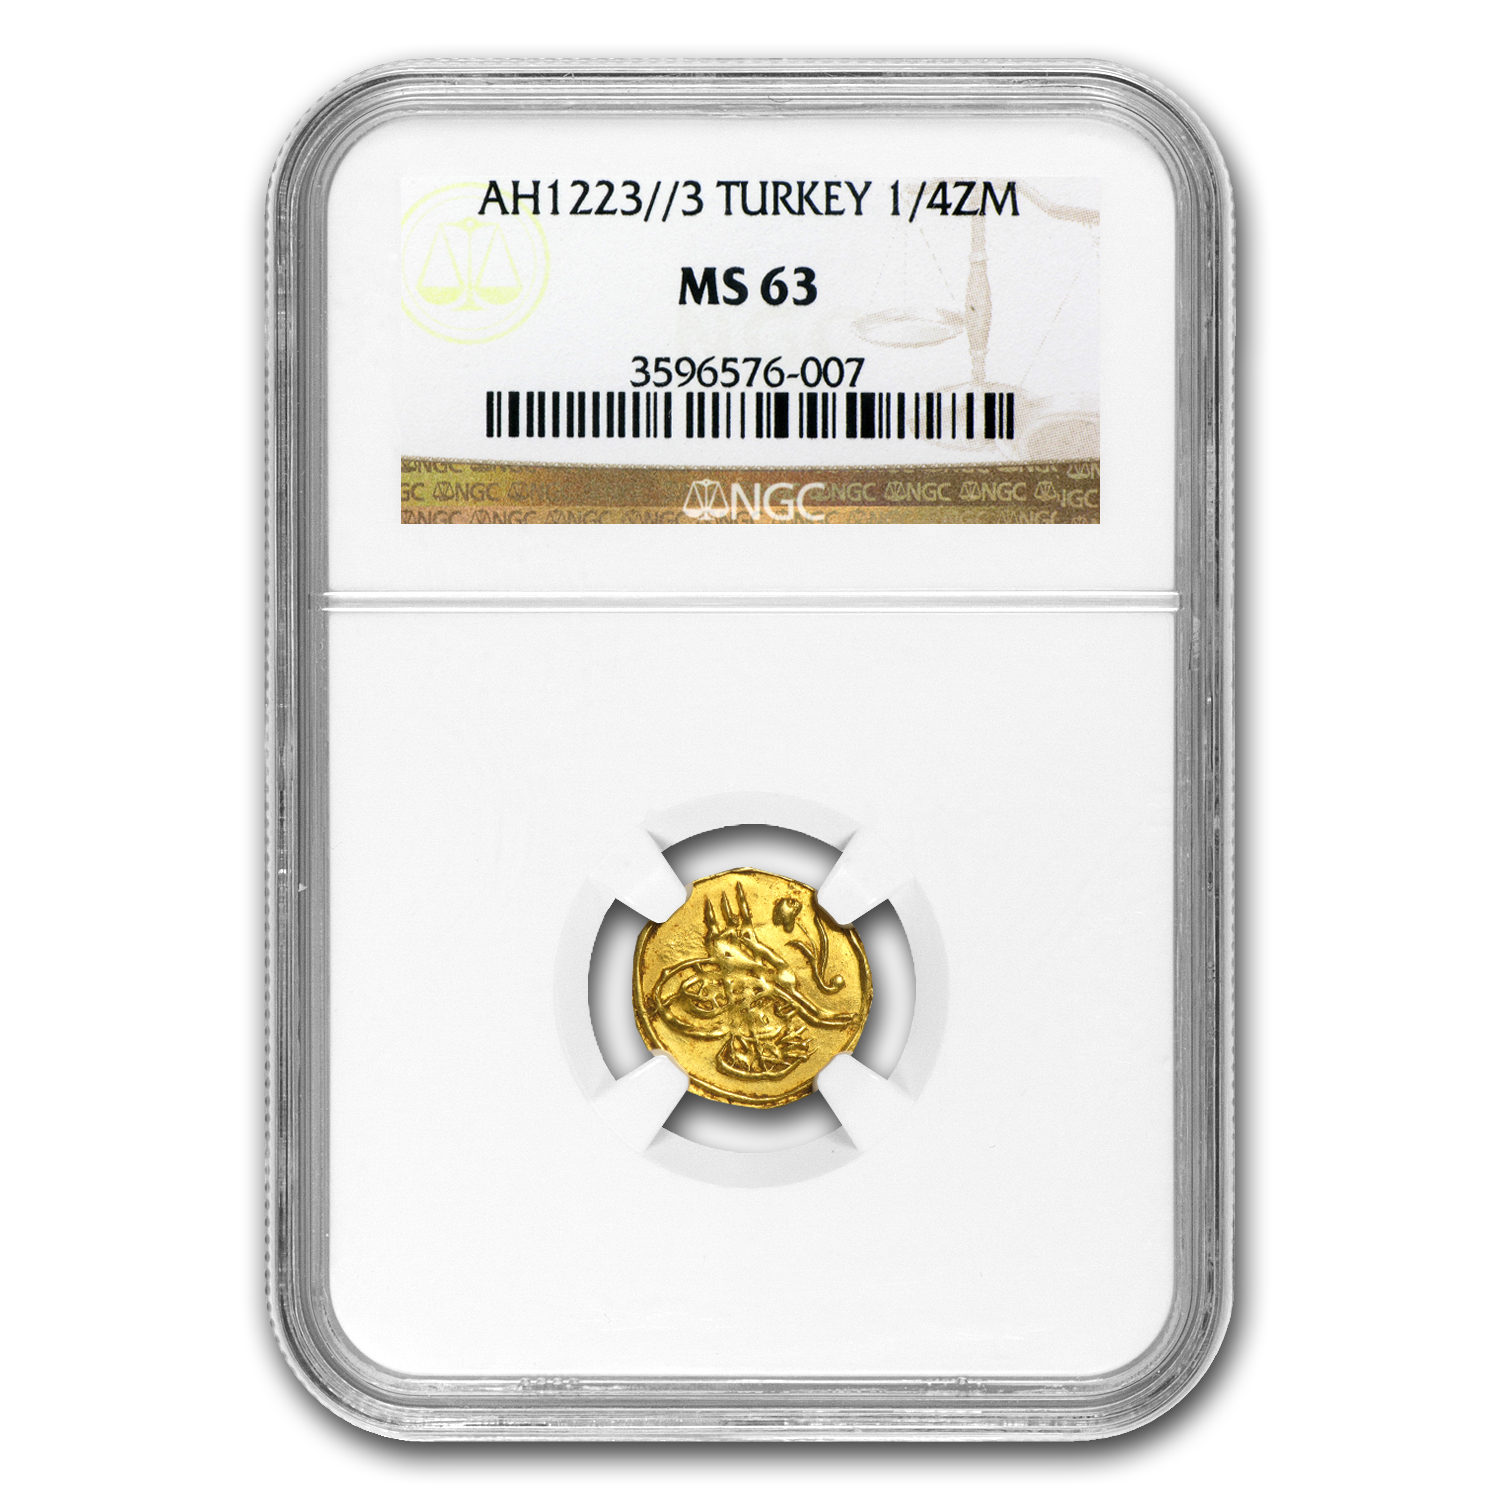 AH1223-1255 Turkey Gold 1/4 Zeri Mahbub MS-63 NGC